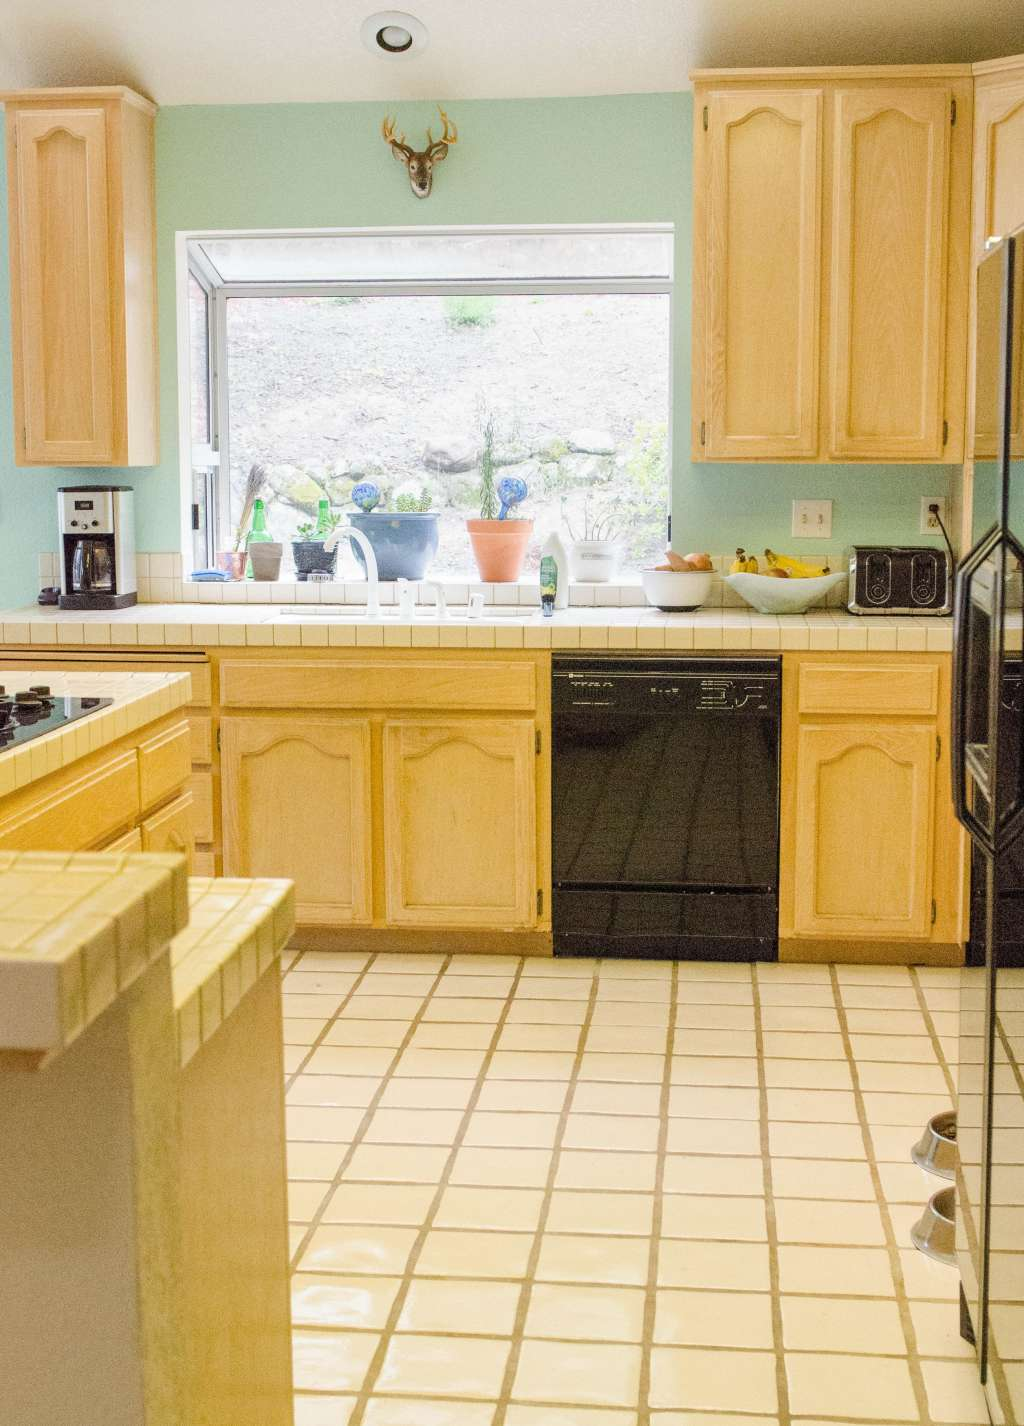 A Goodbye Letter to My Childhood Kitchen